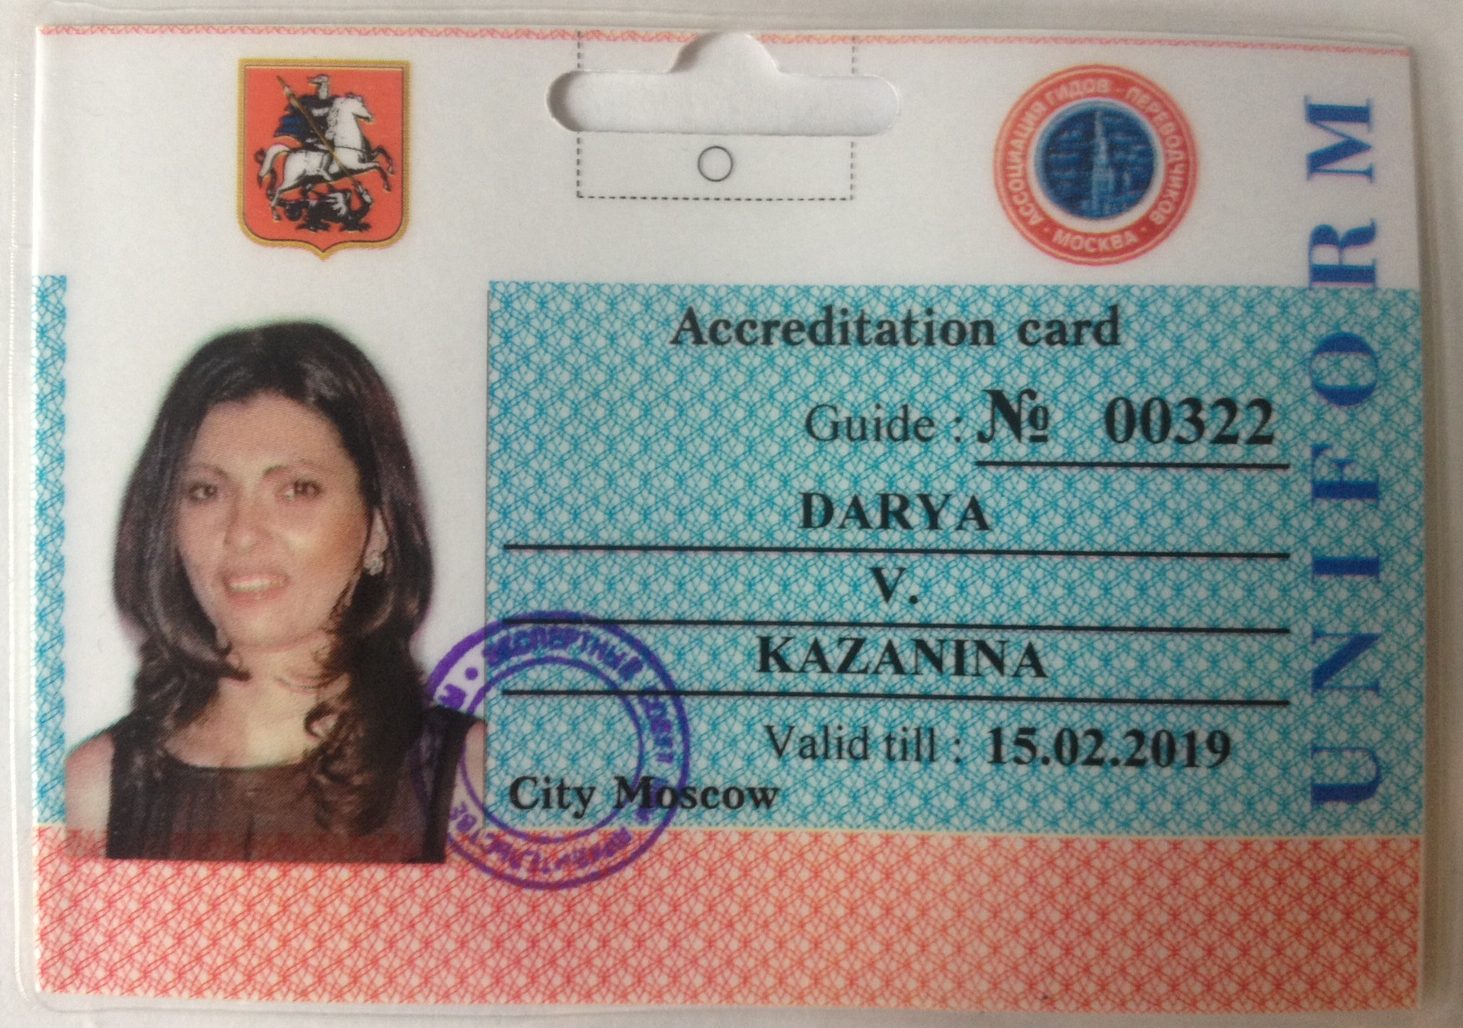 Accreditation Card of Guide-interpreter in Moscow valid till 2019